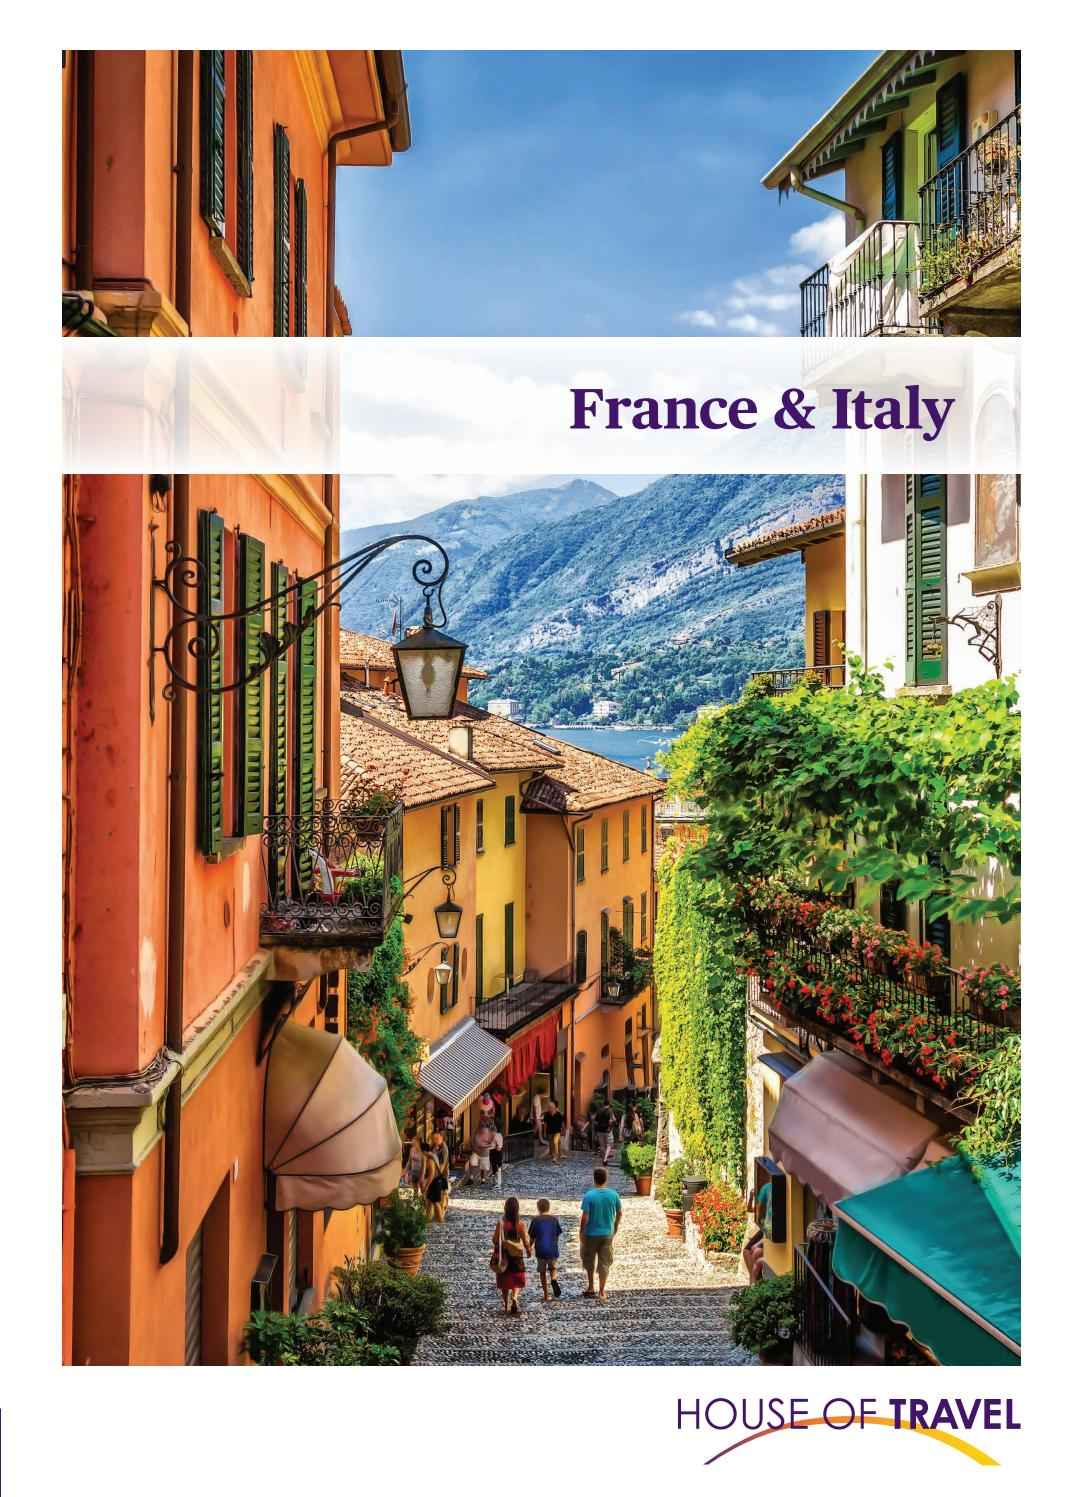 France Italy Brochure 2019 By House Of Travel Issuu